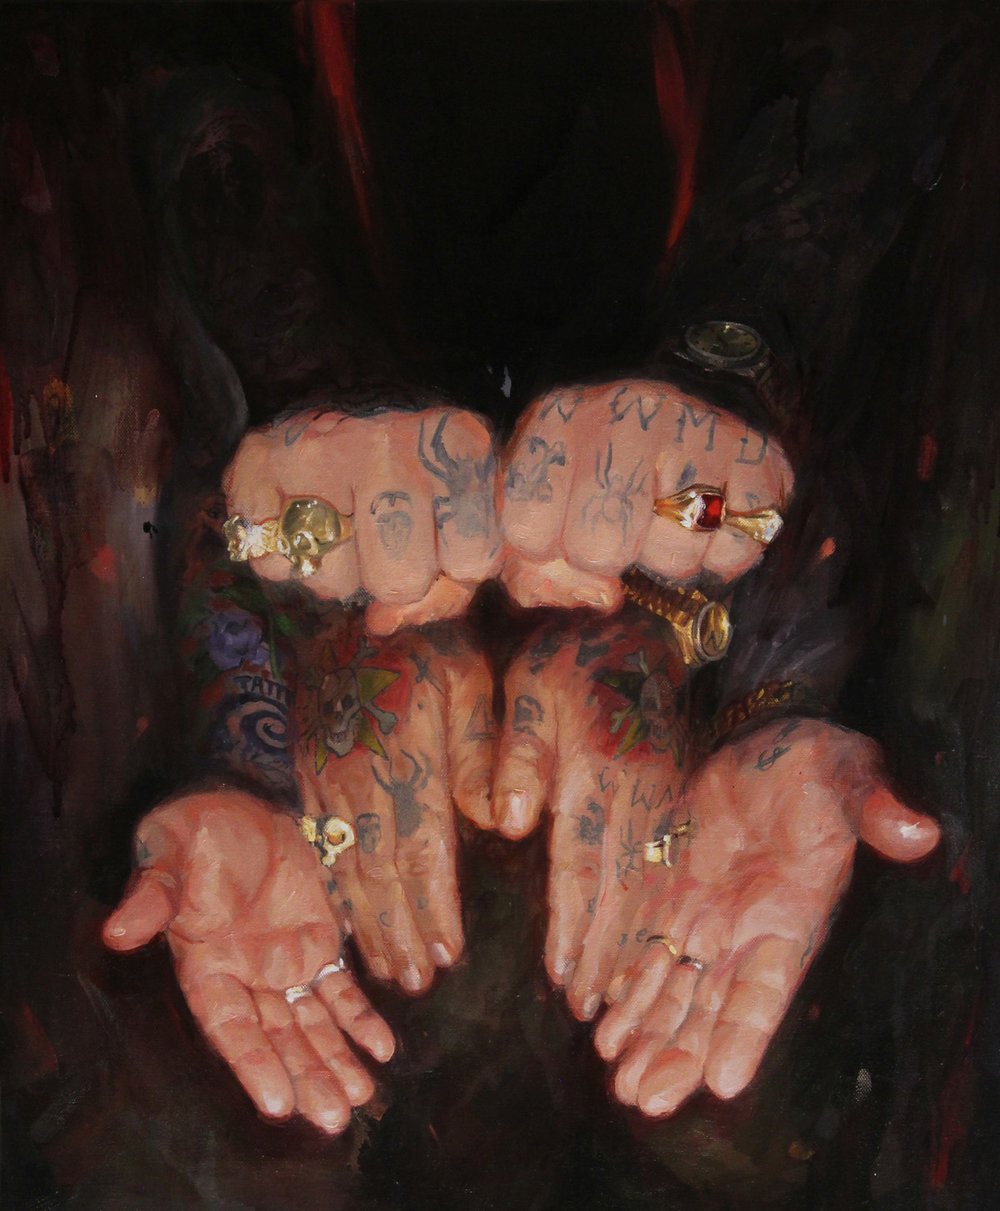 "'Gill Montie's Hand', oil on canvas, 24"" x 20"", 2016, Collection of Lukasz Kies"